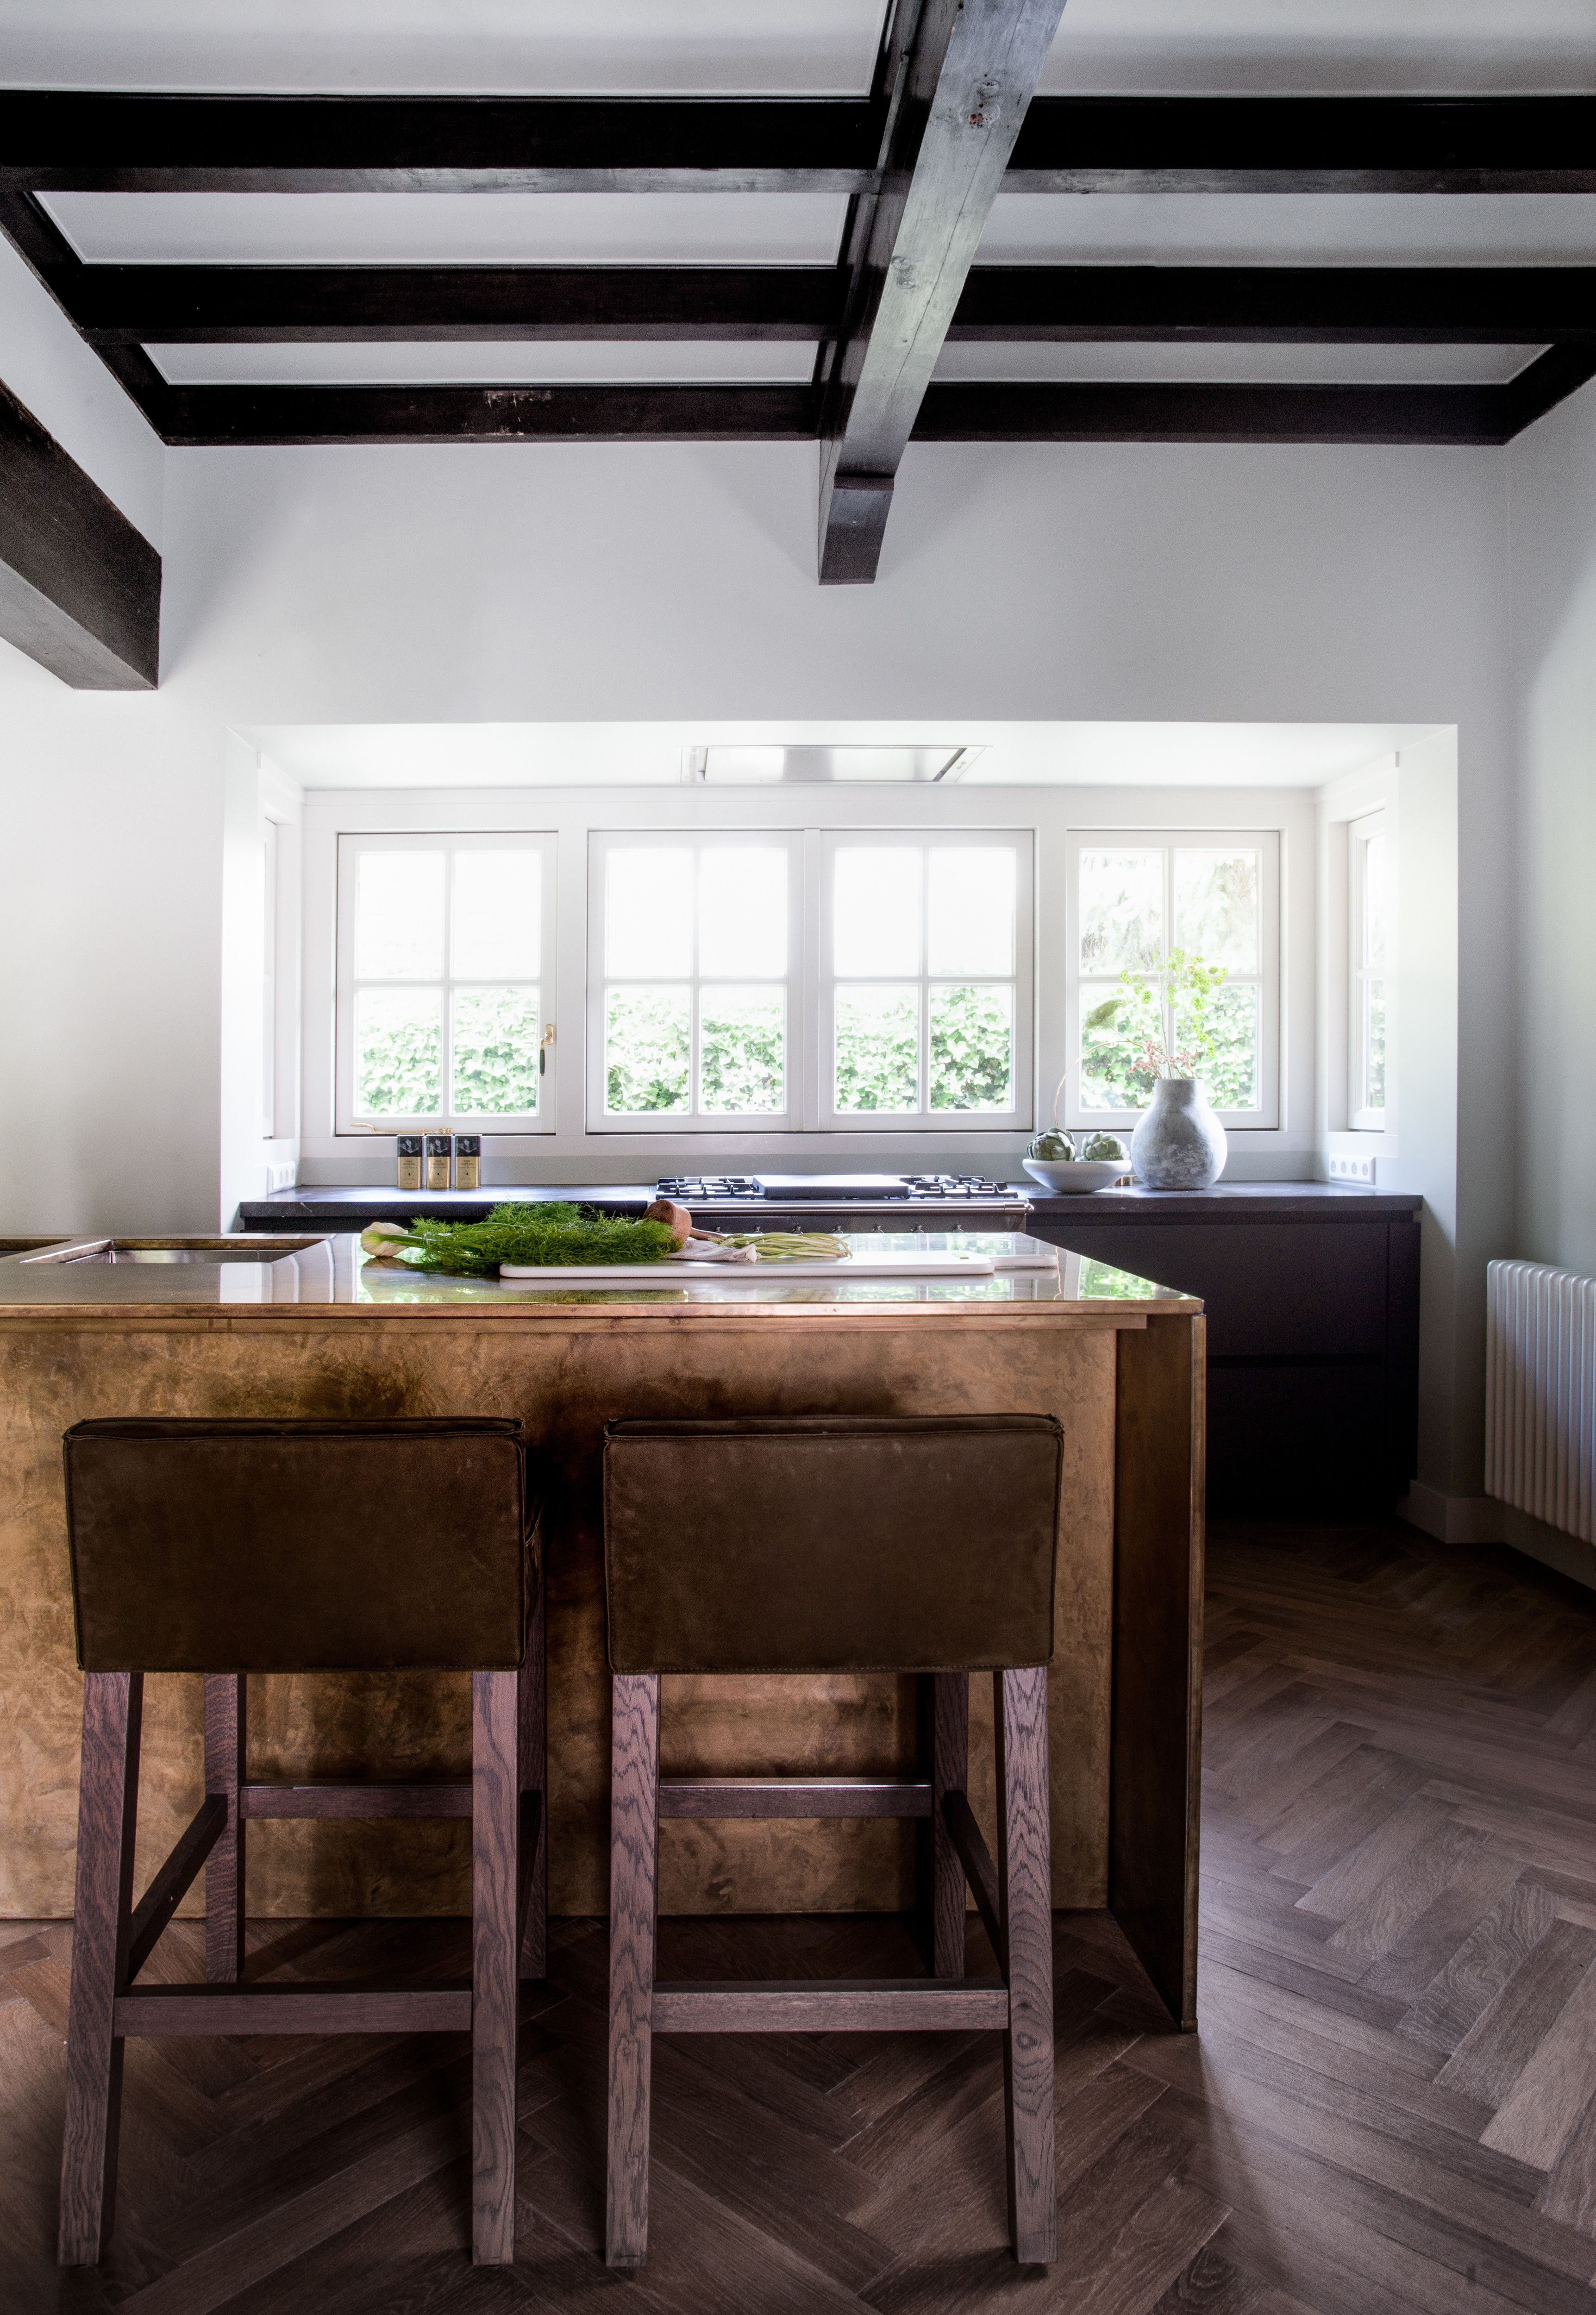 The MONO Designer Kitchen Is An Unusual Eye Catcher And With That An  Enrichment To Any